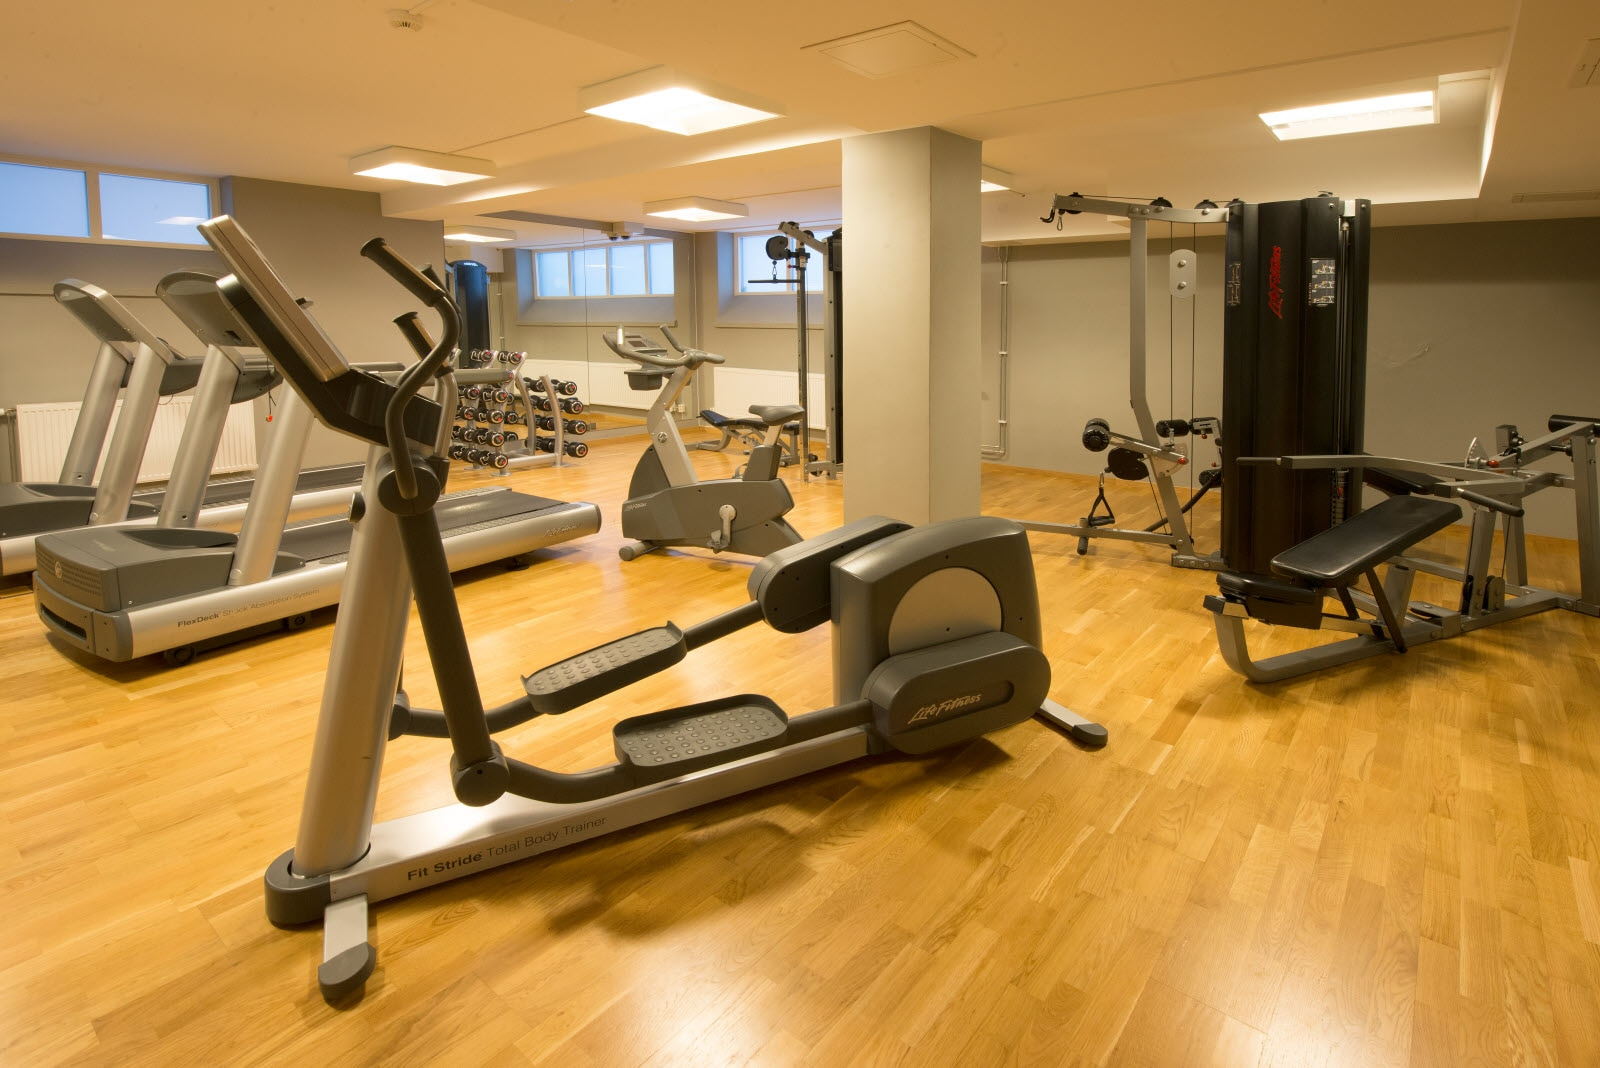 Scandic-Billingen-Gym.jpg